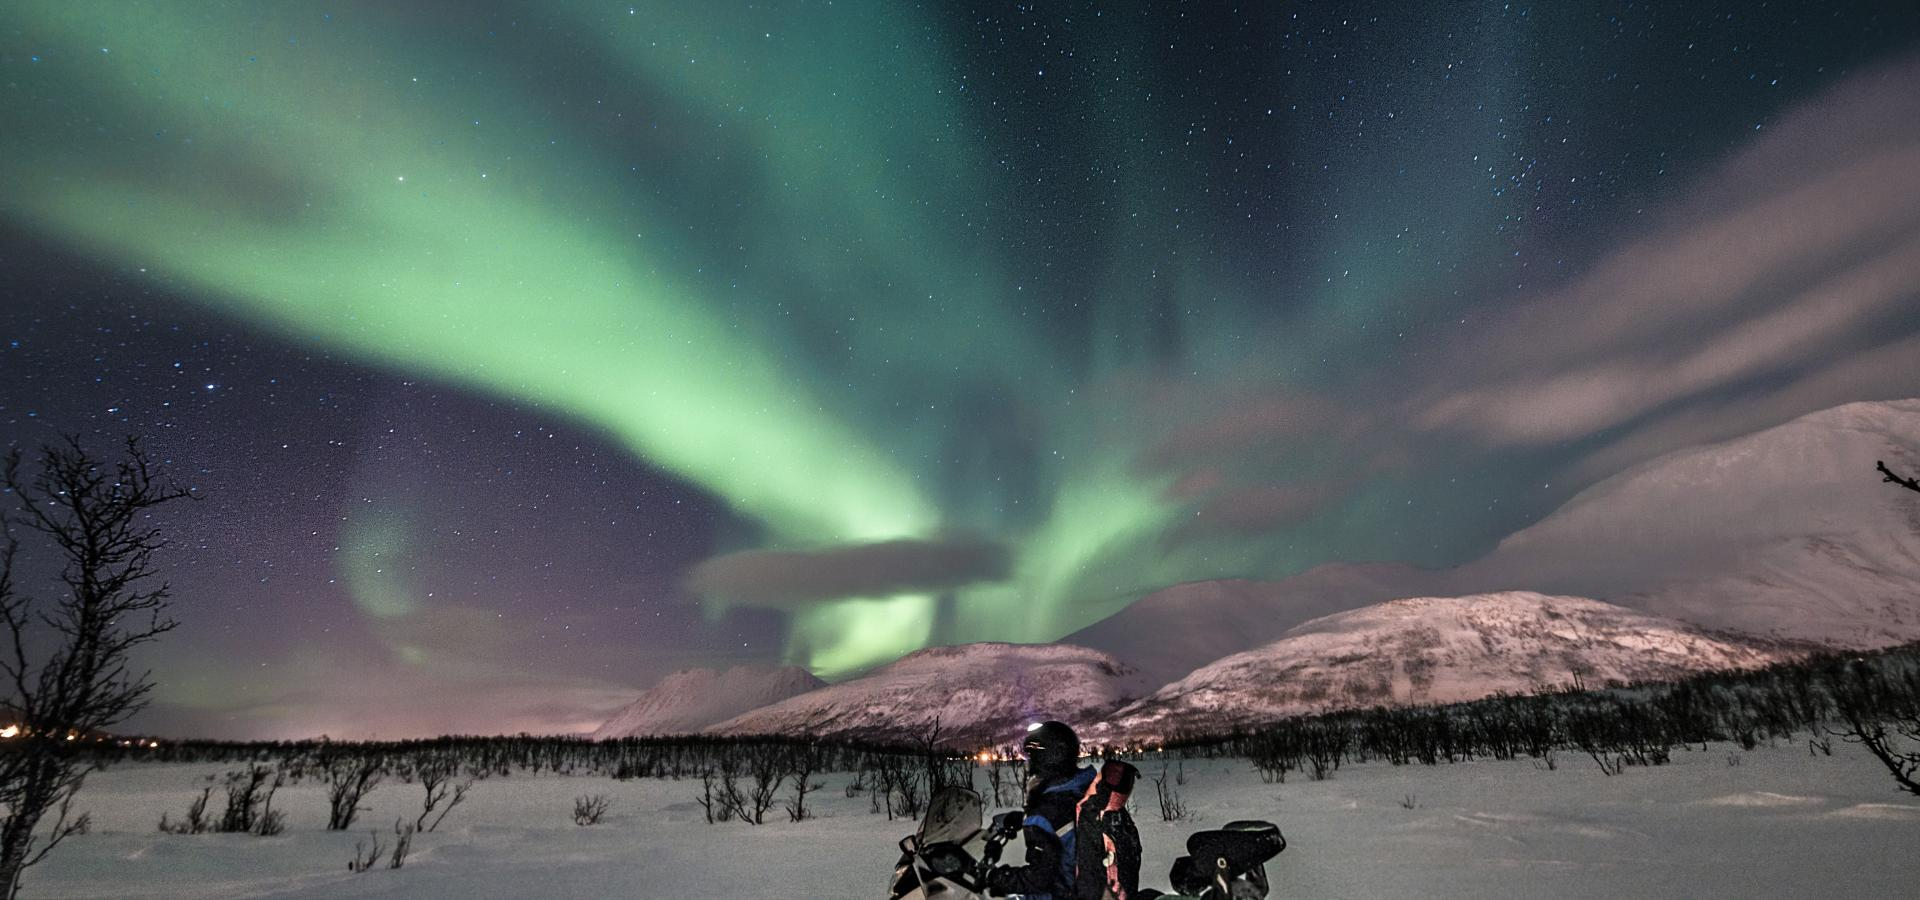 Snowmobiling under the northern lights in the Lyngen Alps, Northern Norway